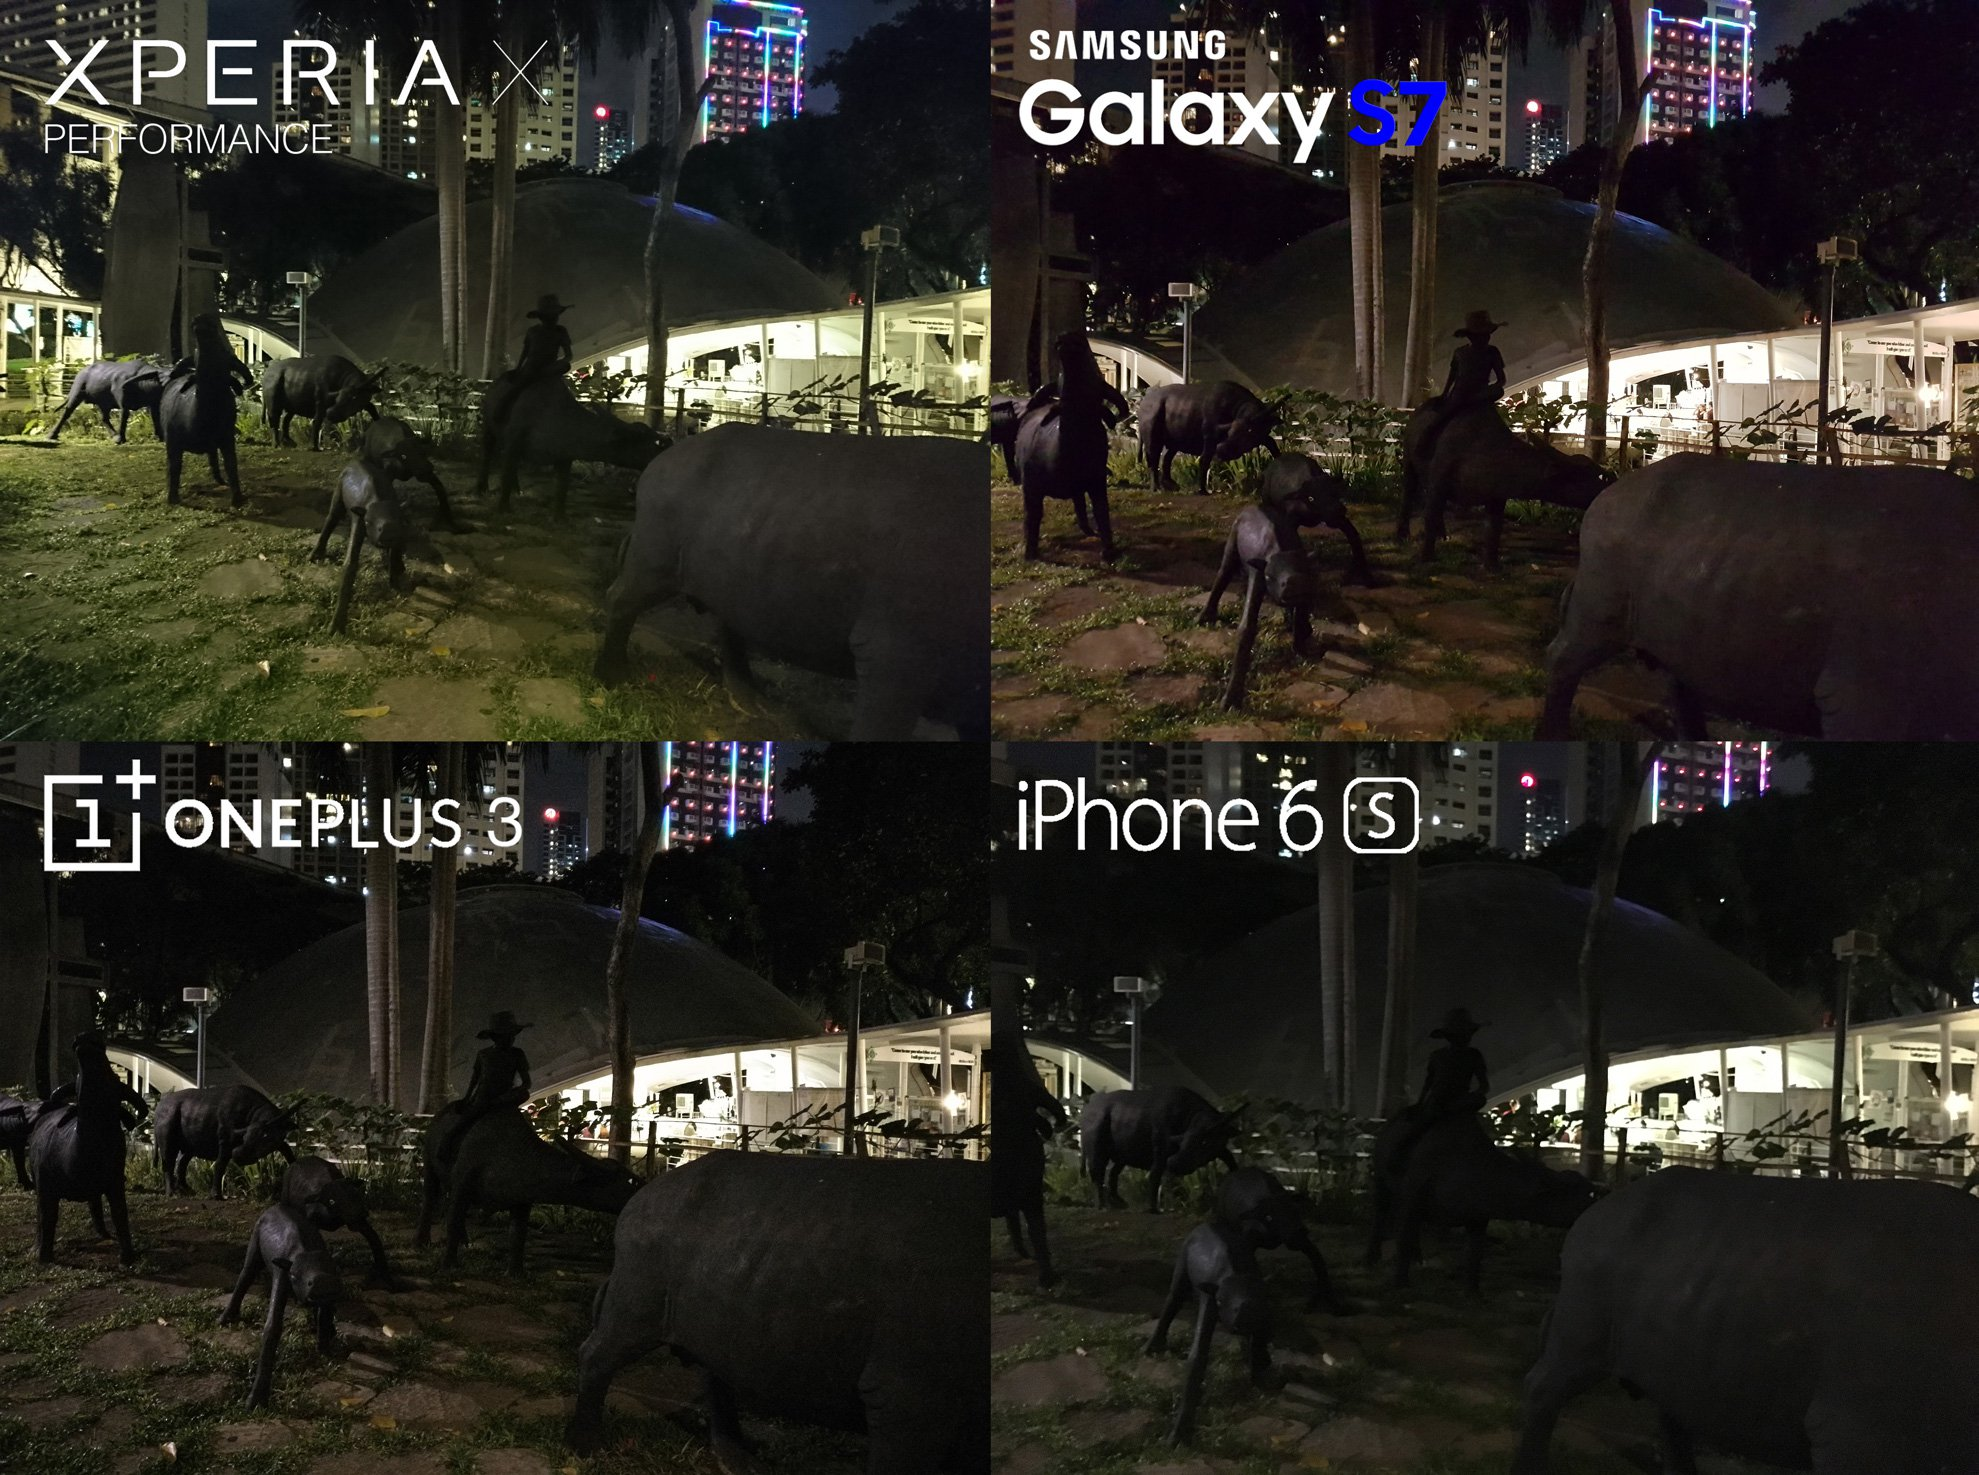 Camera Review Sony Xperia X Performance Samsung Galaxy S7 iPhone 6s 7 OnePlus 3 4